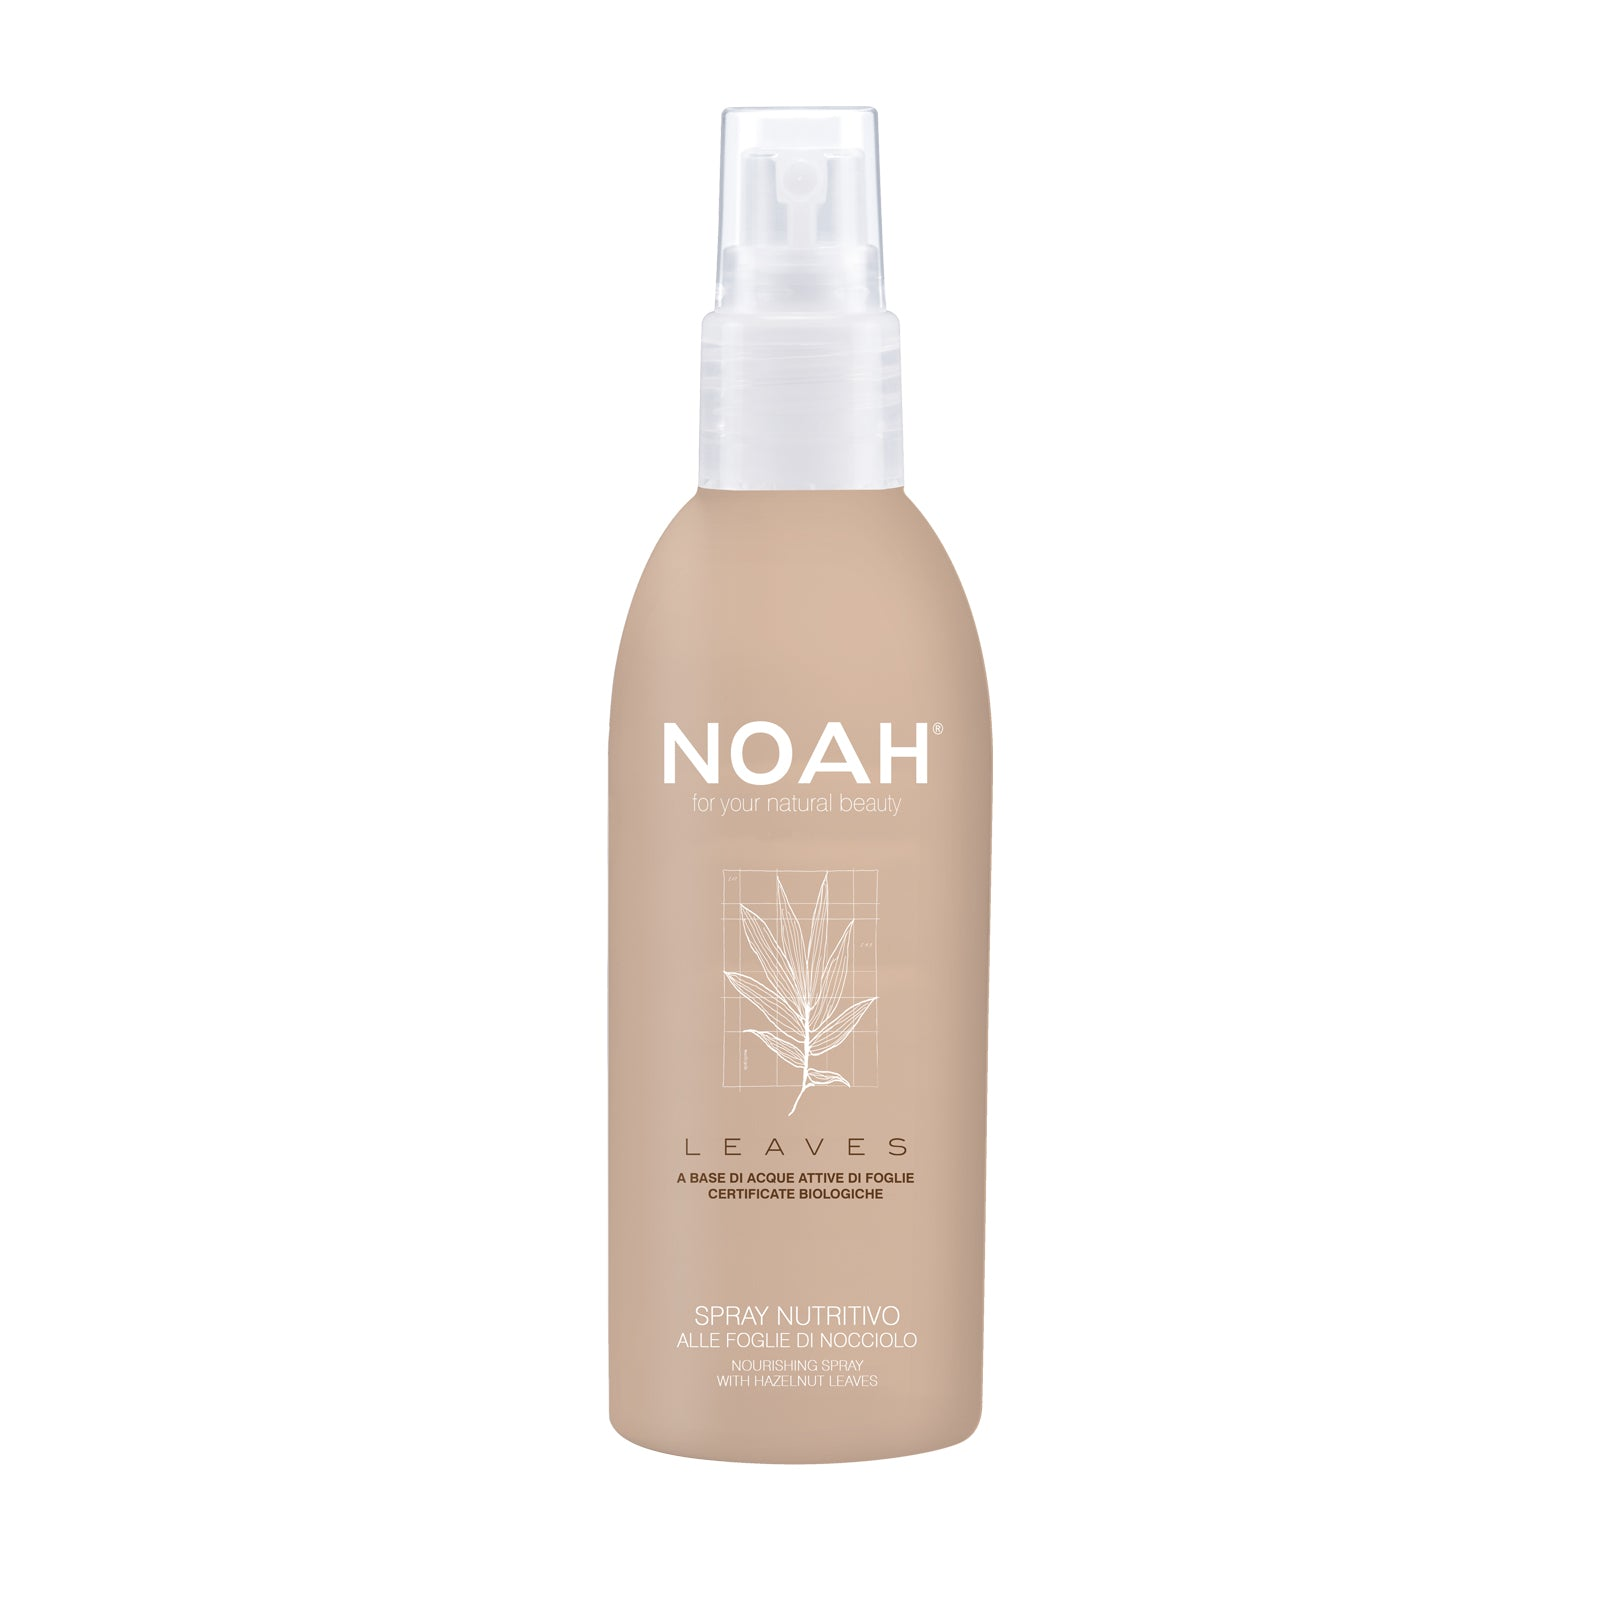 NOAH LEAVES Spray nourishing with hazelnut -SUORISTAVA SUIHKE